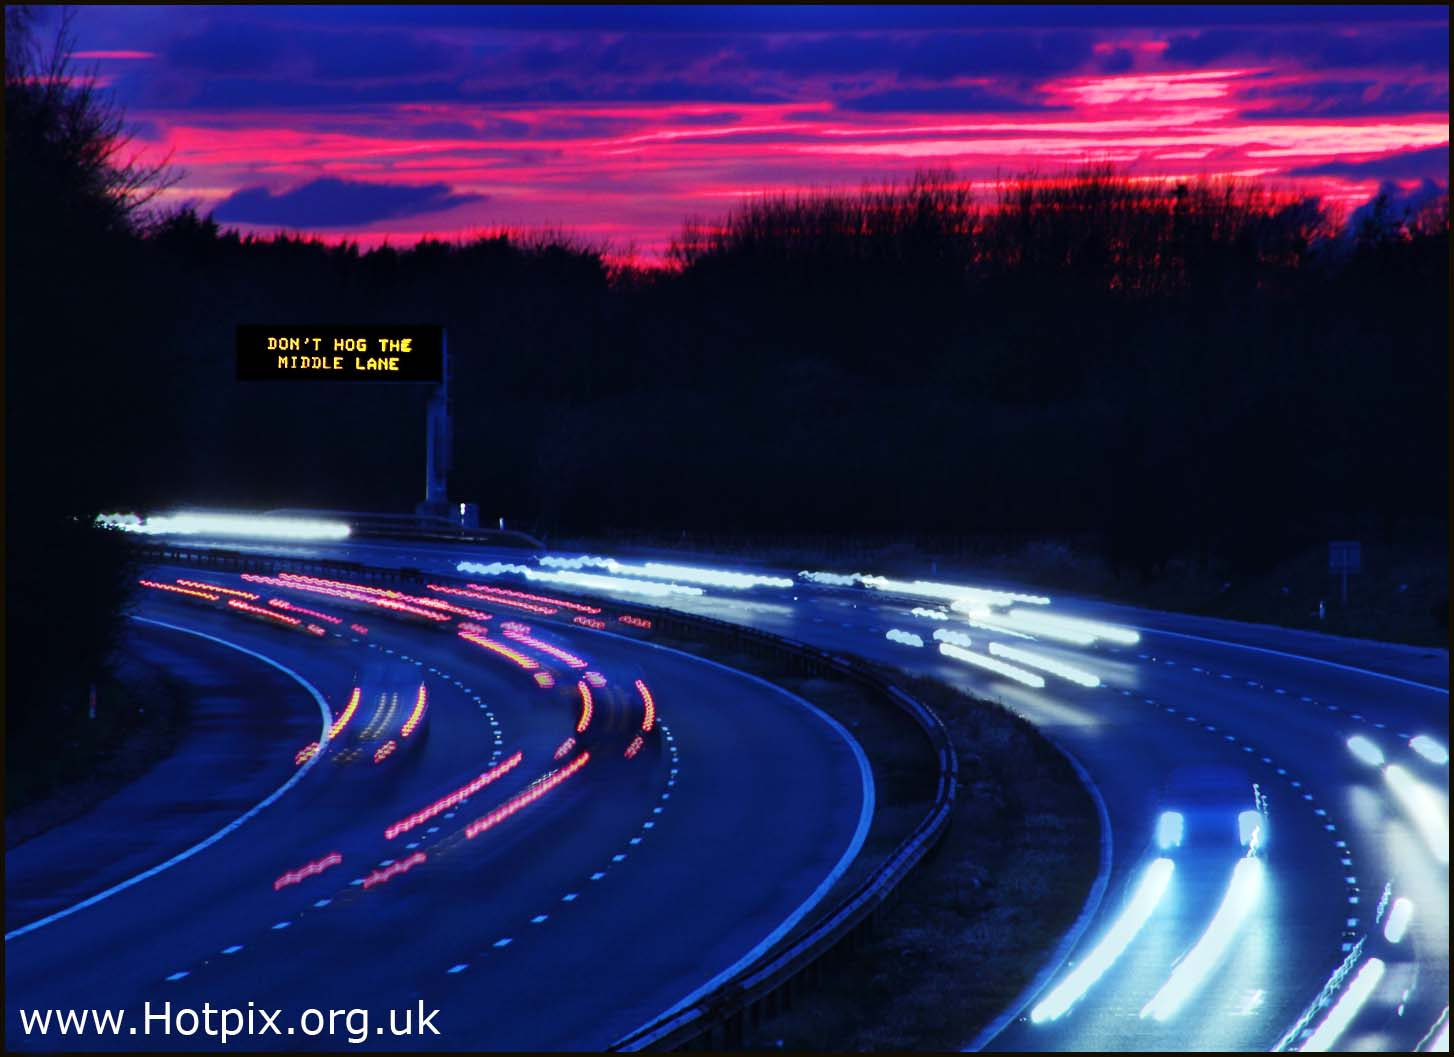 A56,M56,motorway,road,england,lymm,cheshire,chester,traffic,trai a56,trails,red,white,dusk,night,shot,tripod,sky,sunset,after,magic,hour,uk,britain,trucks,vans,sign,hazards,warning,jam,polution,co2,vehicle,car,freight,information,info,highway,auto,autos,automobile,automobiles,vehicles,abstract,light,stream,lightstream,hotpix!,hotpix.rocketmail.com,hotpixuk.rocketmail.com,contact.tony.smith.gmail.com,tony.smith.gmail.com,tonys@miscs.com,tony.smith@mis-ams.com